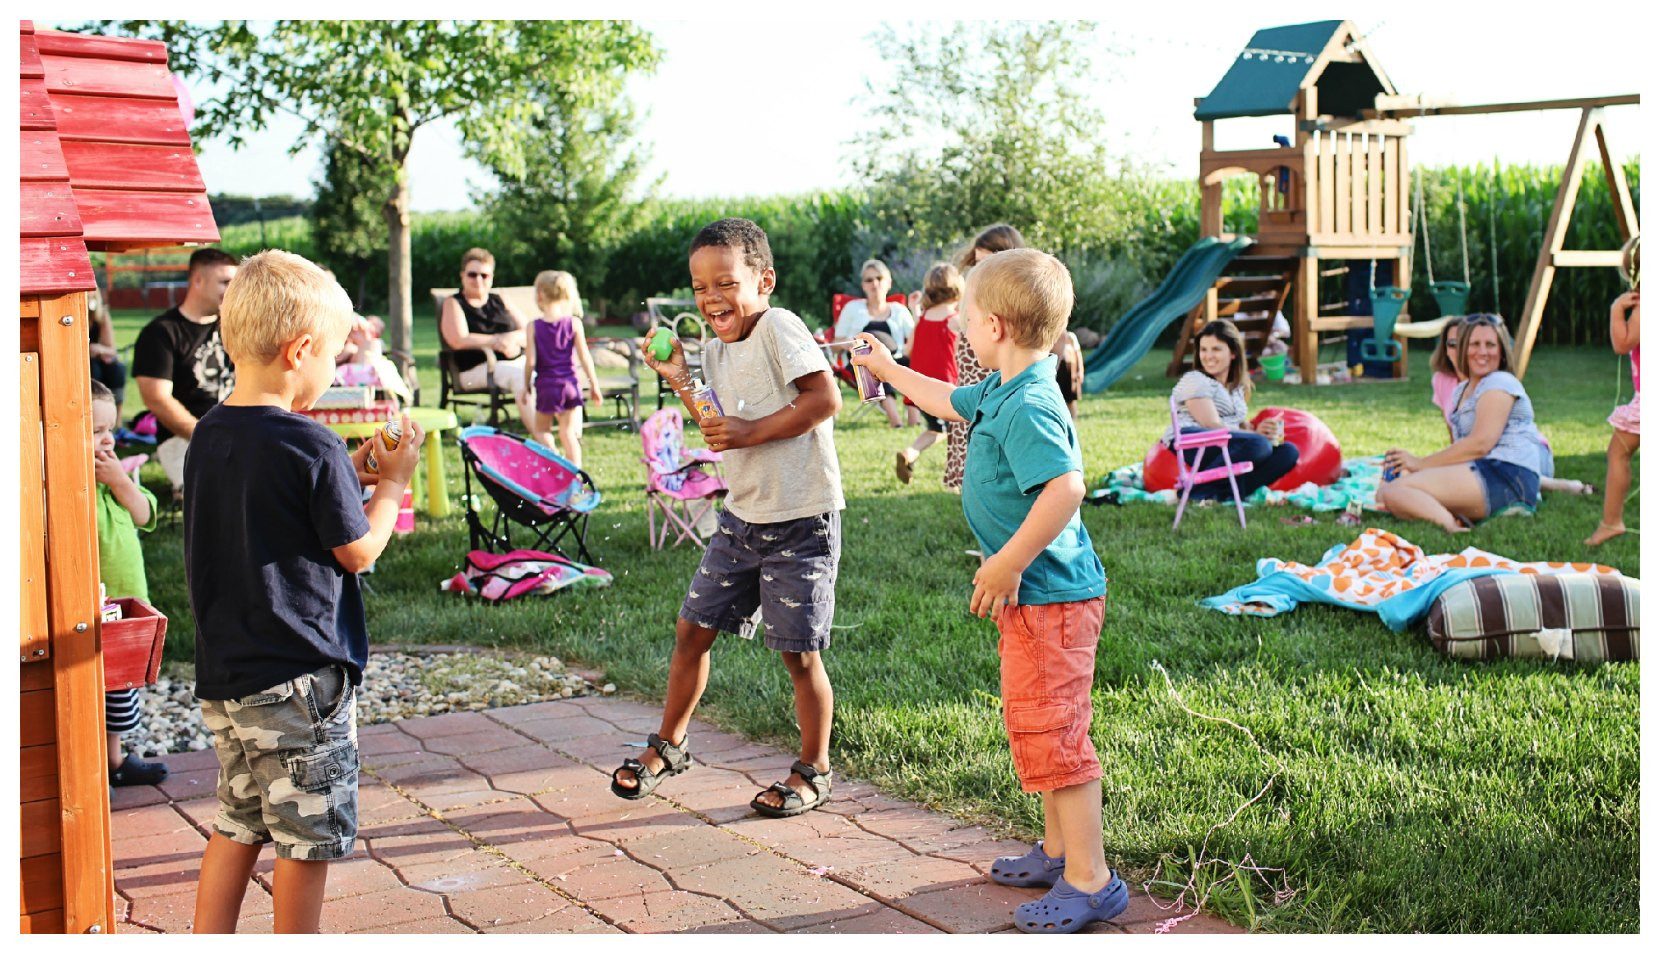 Toddler Backyard Birthday Party Ideas  Confuse This Solo Outdoor Games For Kids Can Give You